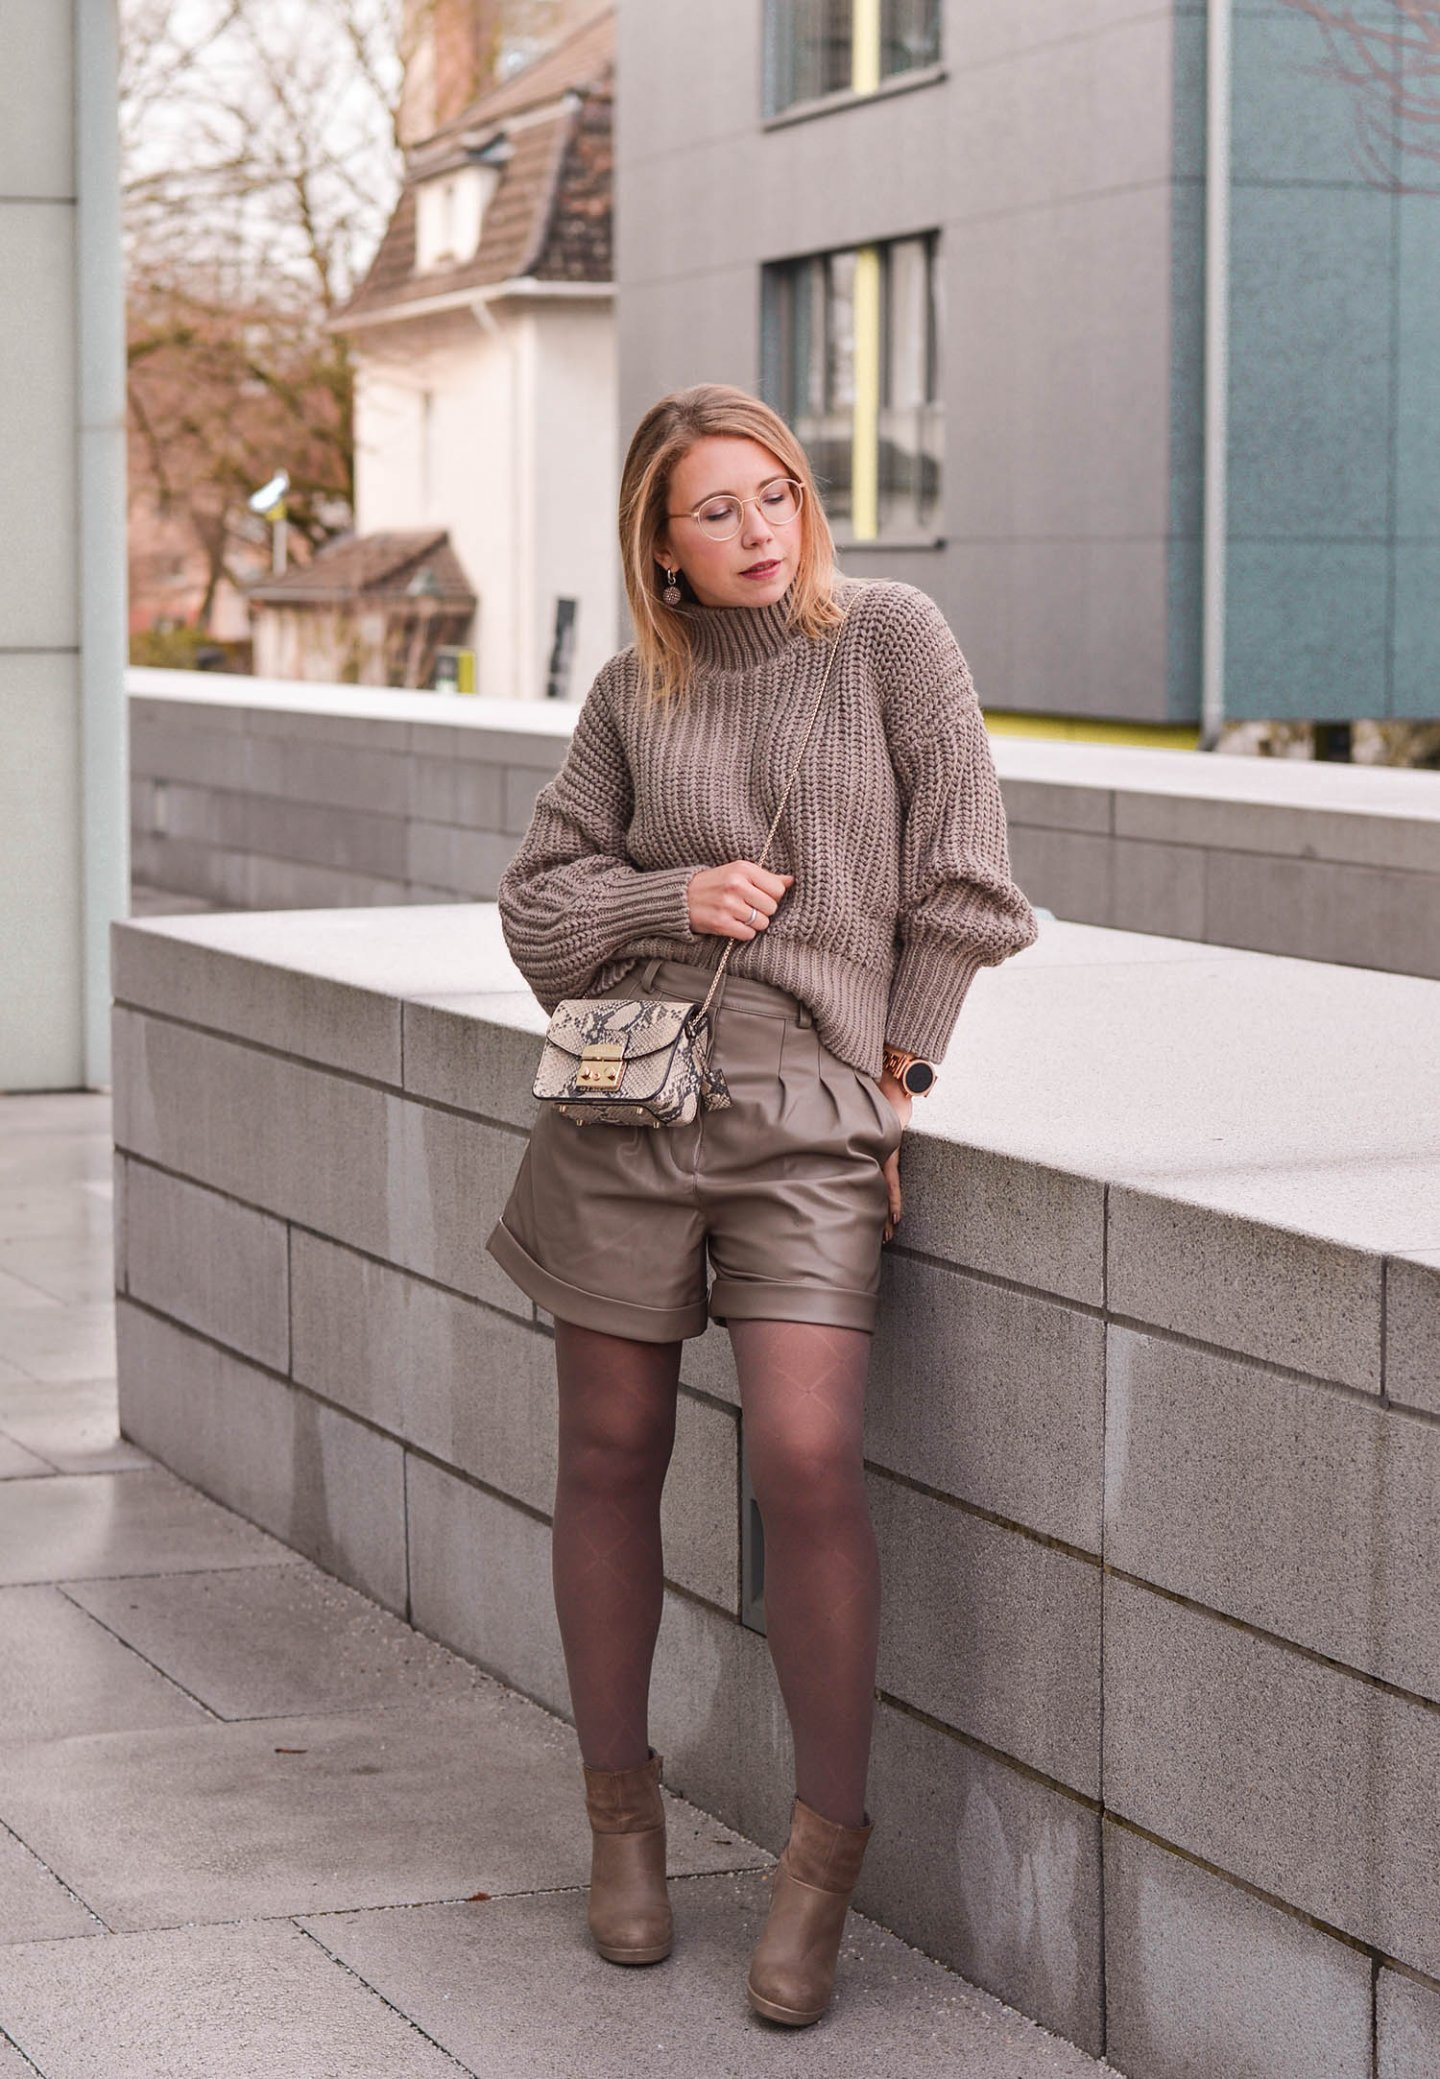 H&M Allover Outfit in Taupe